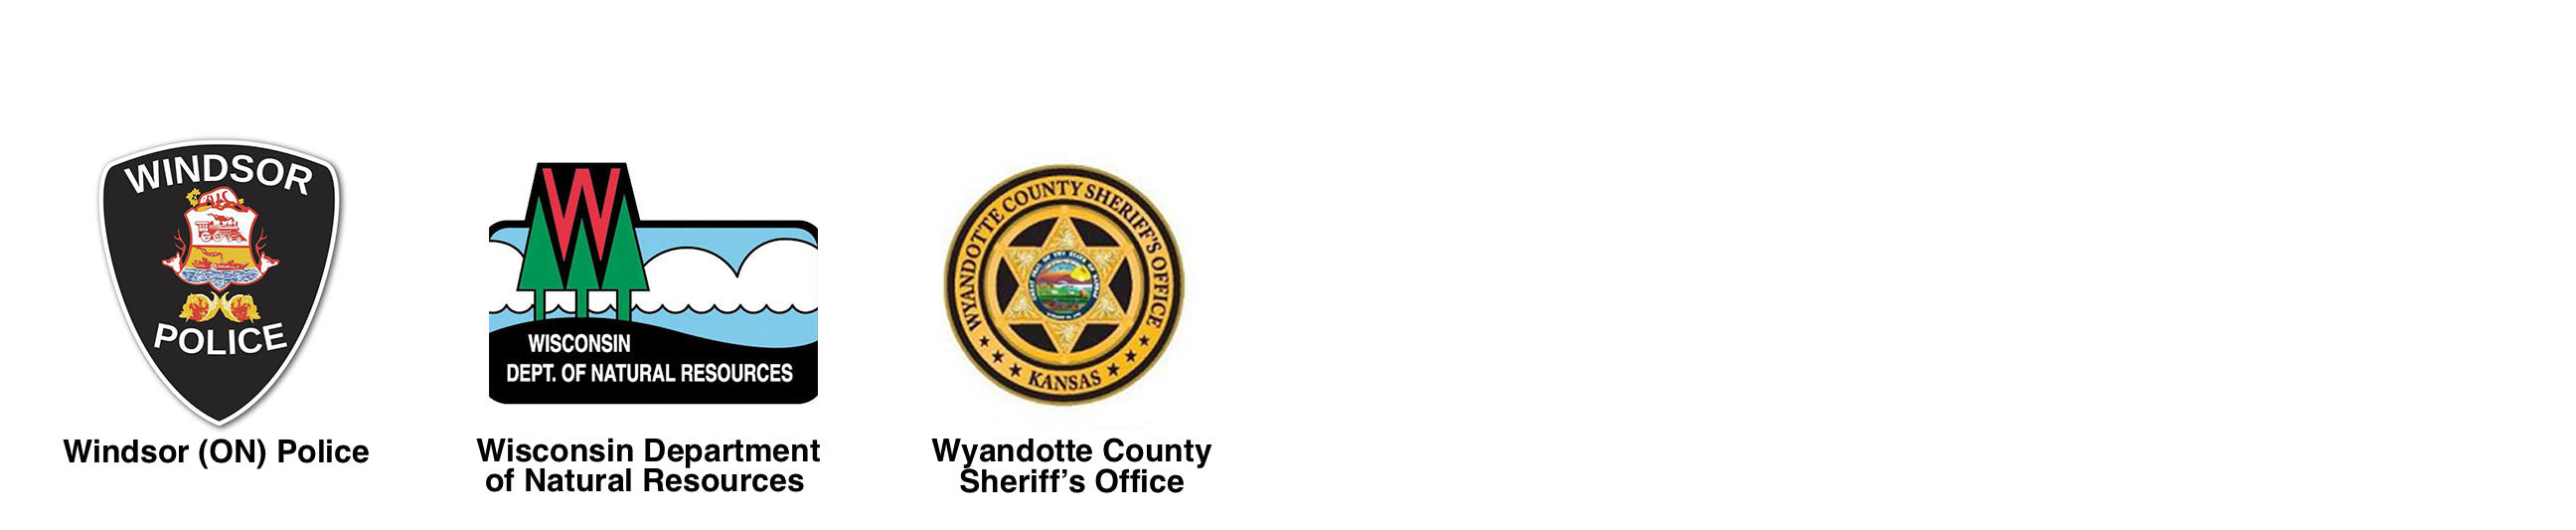 Windsor (ON) Police, Wisconsin Department of Natural Resources, Wyandotte County Sheriffs Office